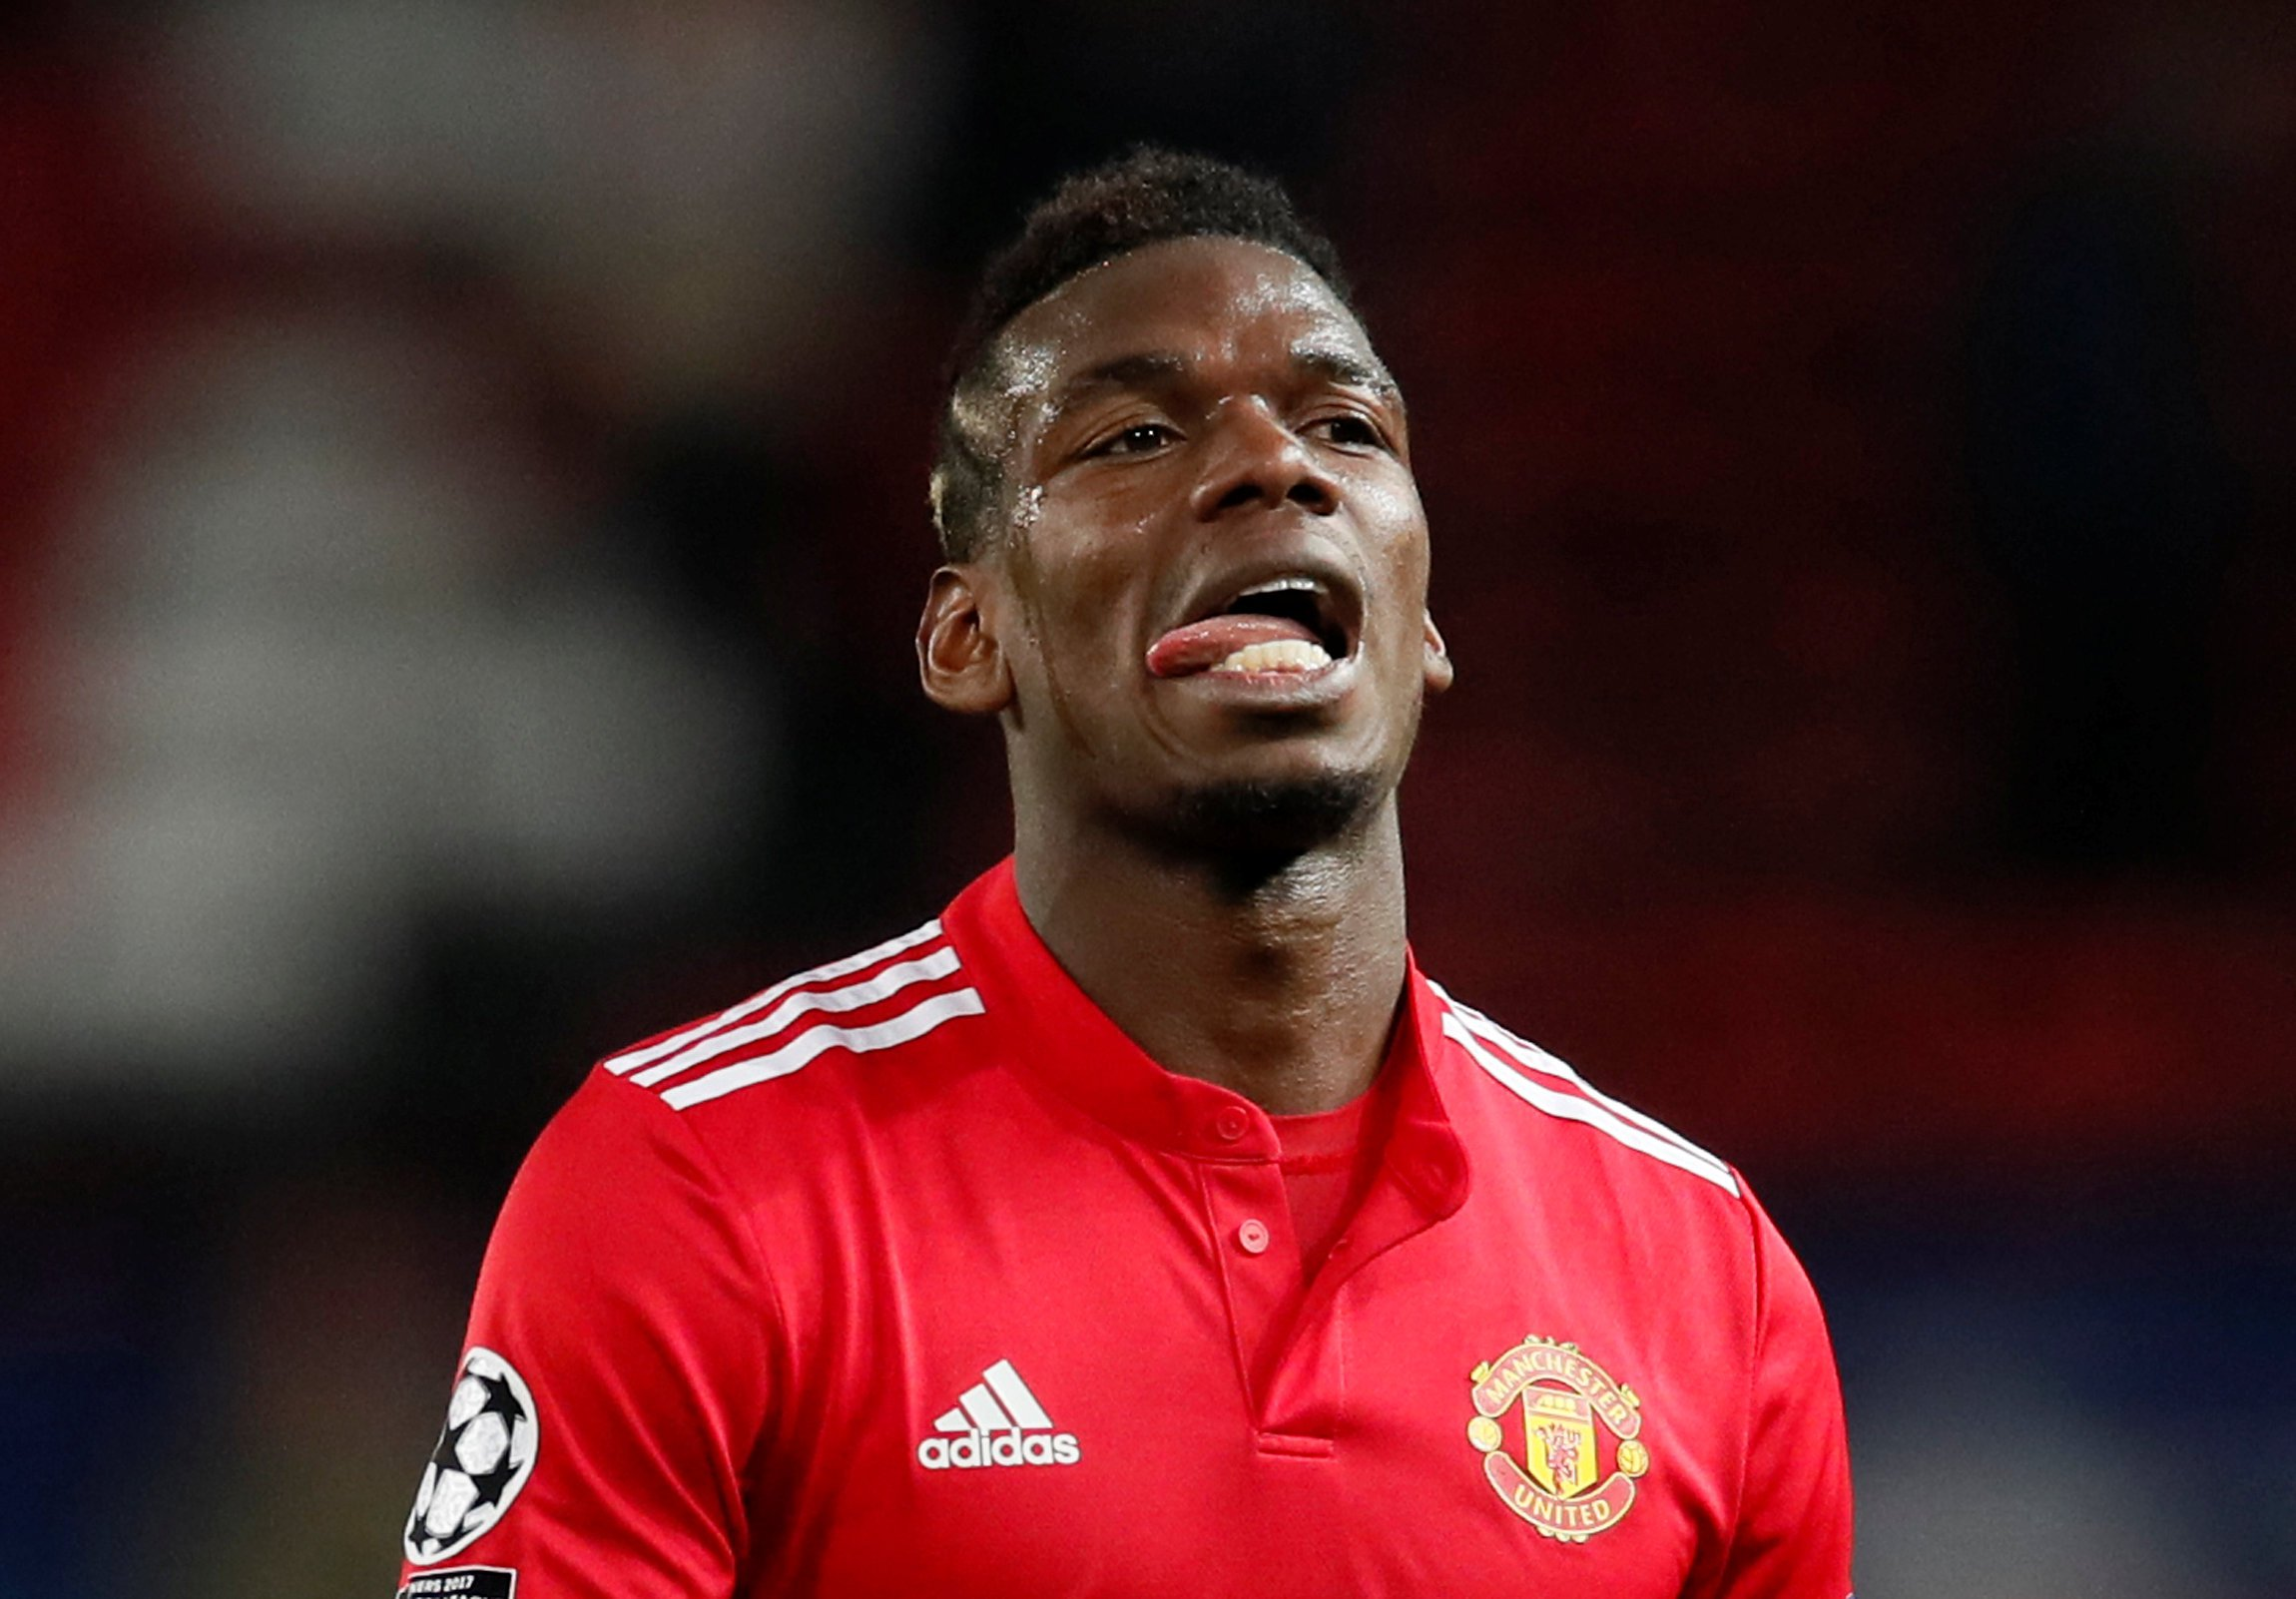 Soccer Football - Champions League Round of 16 Second Leg - Manchester United vs Sevilla - Old Trafford, Manchester, Britain - March 13, 2018 Manchester United's Paul Pogba looks dejected after the match REUTERS/David Klein